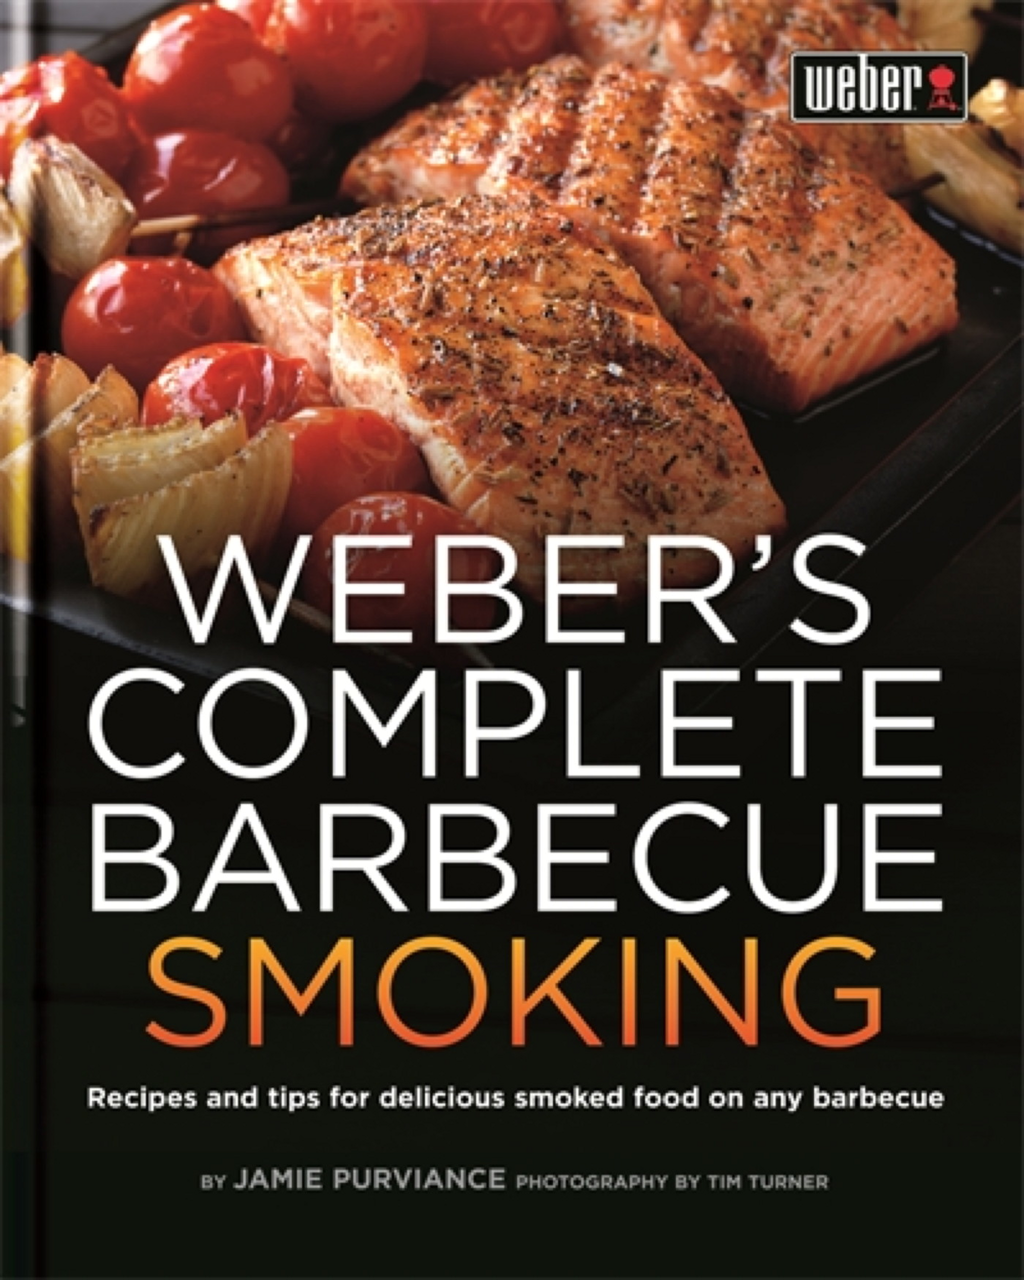 Weber's Complete Barbecue Smoking